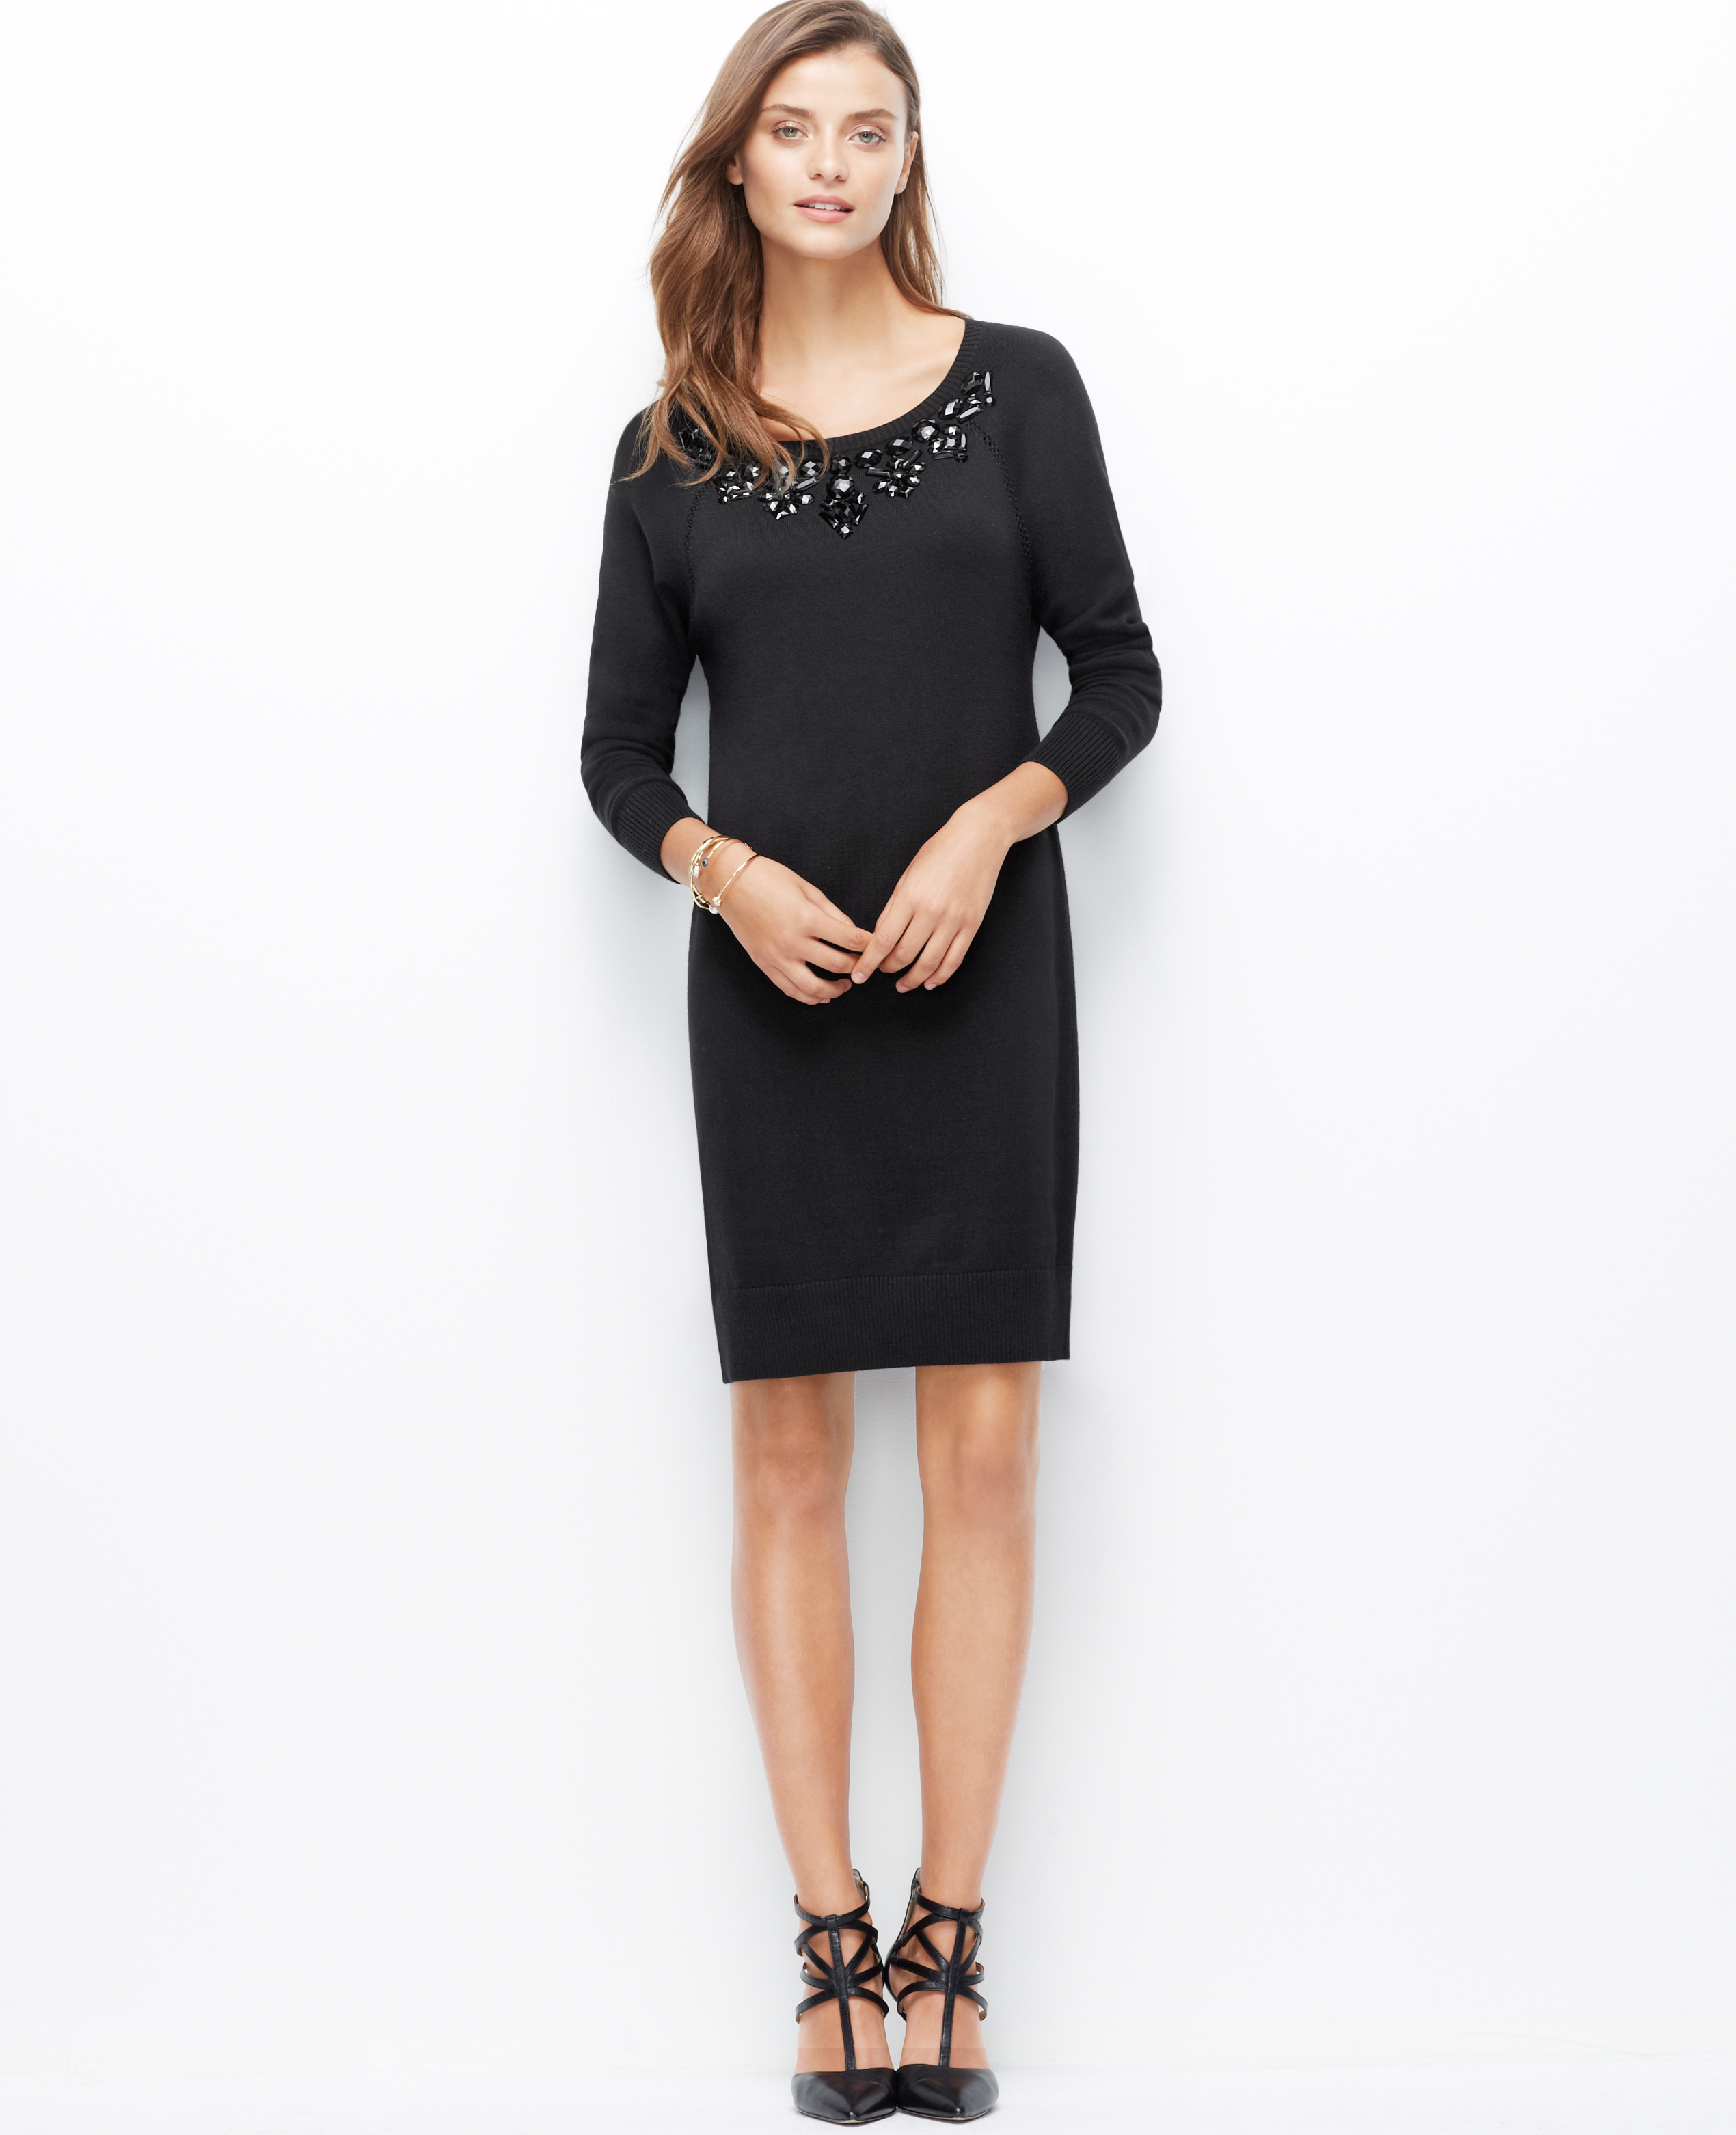 From casual day to elegant cocktail, Talbots has a dress for every janydo.ml Online Exclusives · Easy Returns · Shop Online, Buy In-Store · Enroll in Classic Awards/10 (16K reviews).